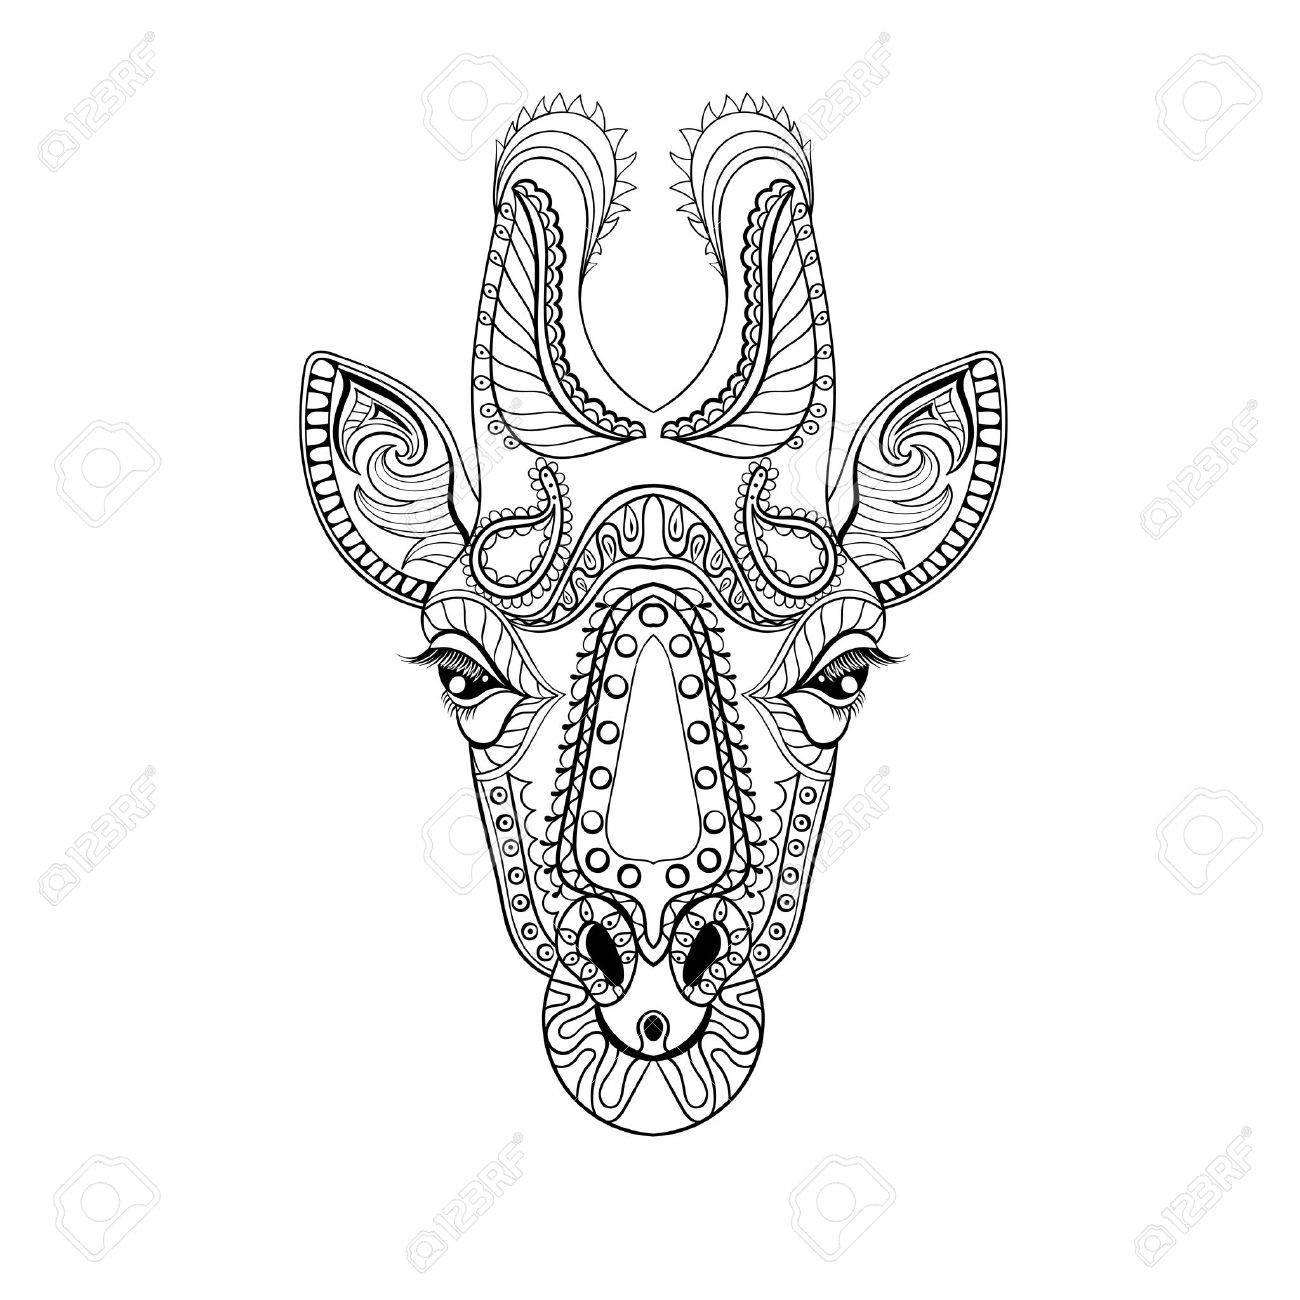 - Zentangle Giraffe Head Totem For Adult Anti Stress Coloring Page